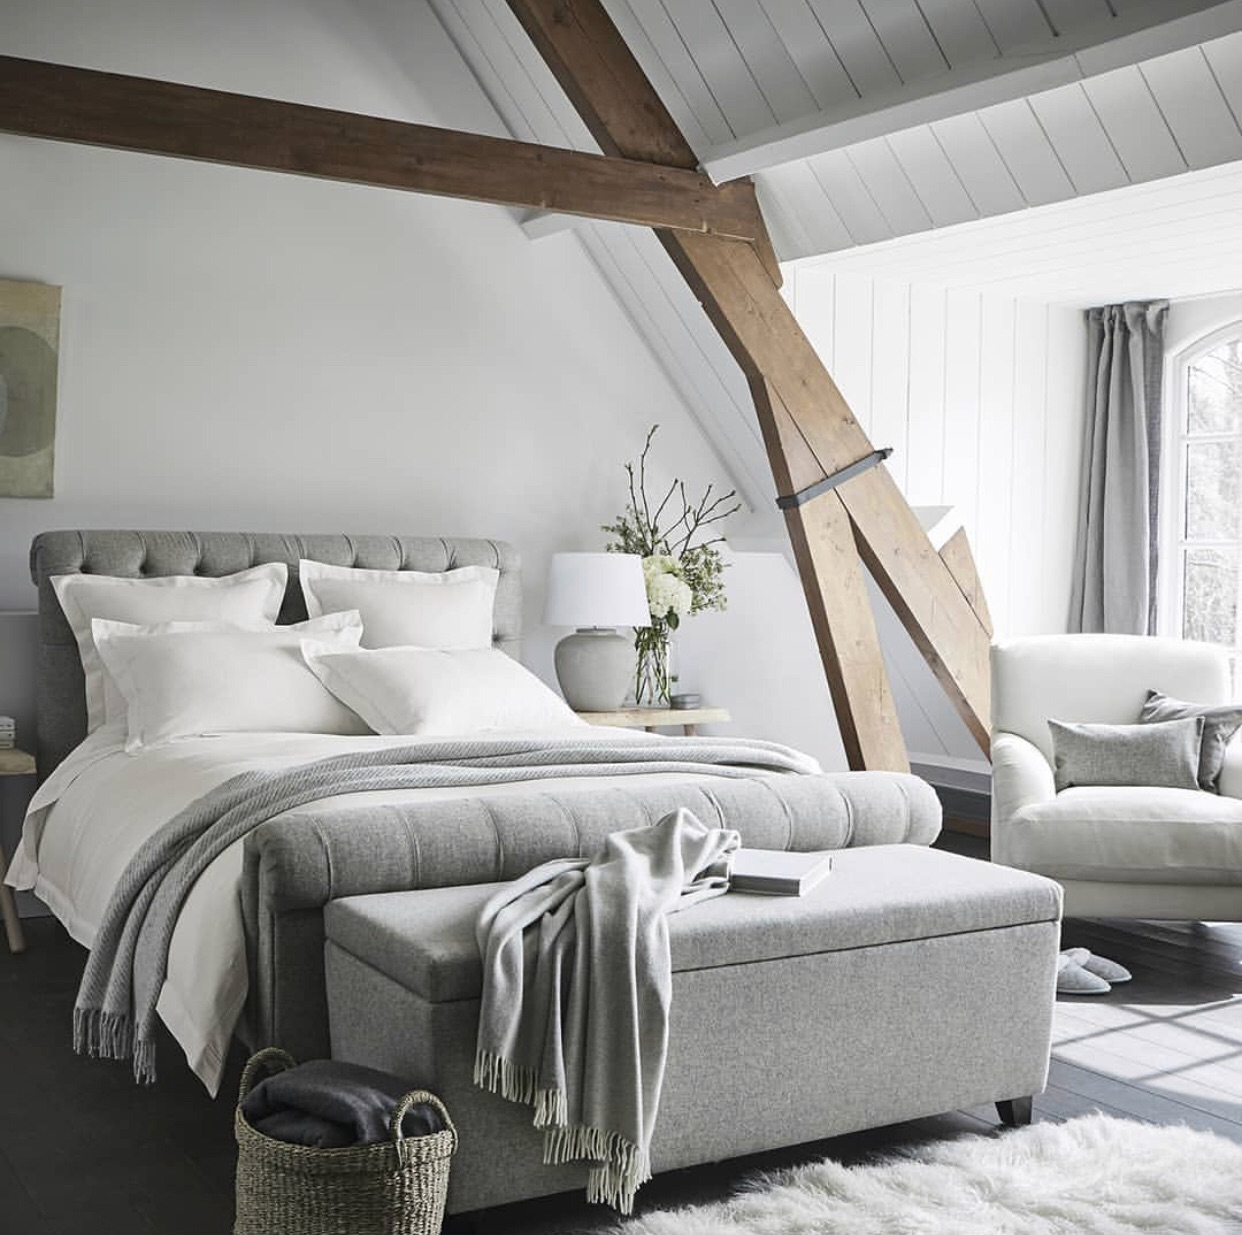 Gorgeous interior from the white company! on We Heart It